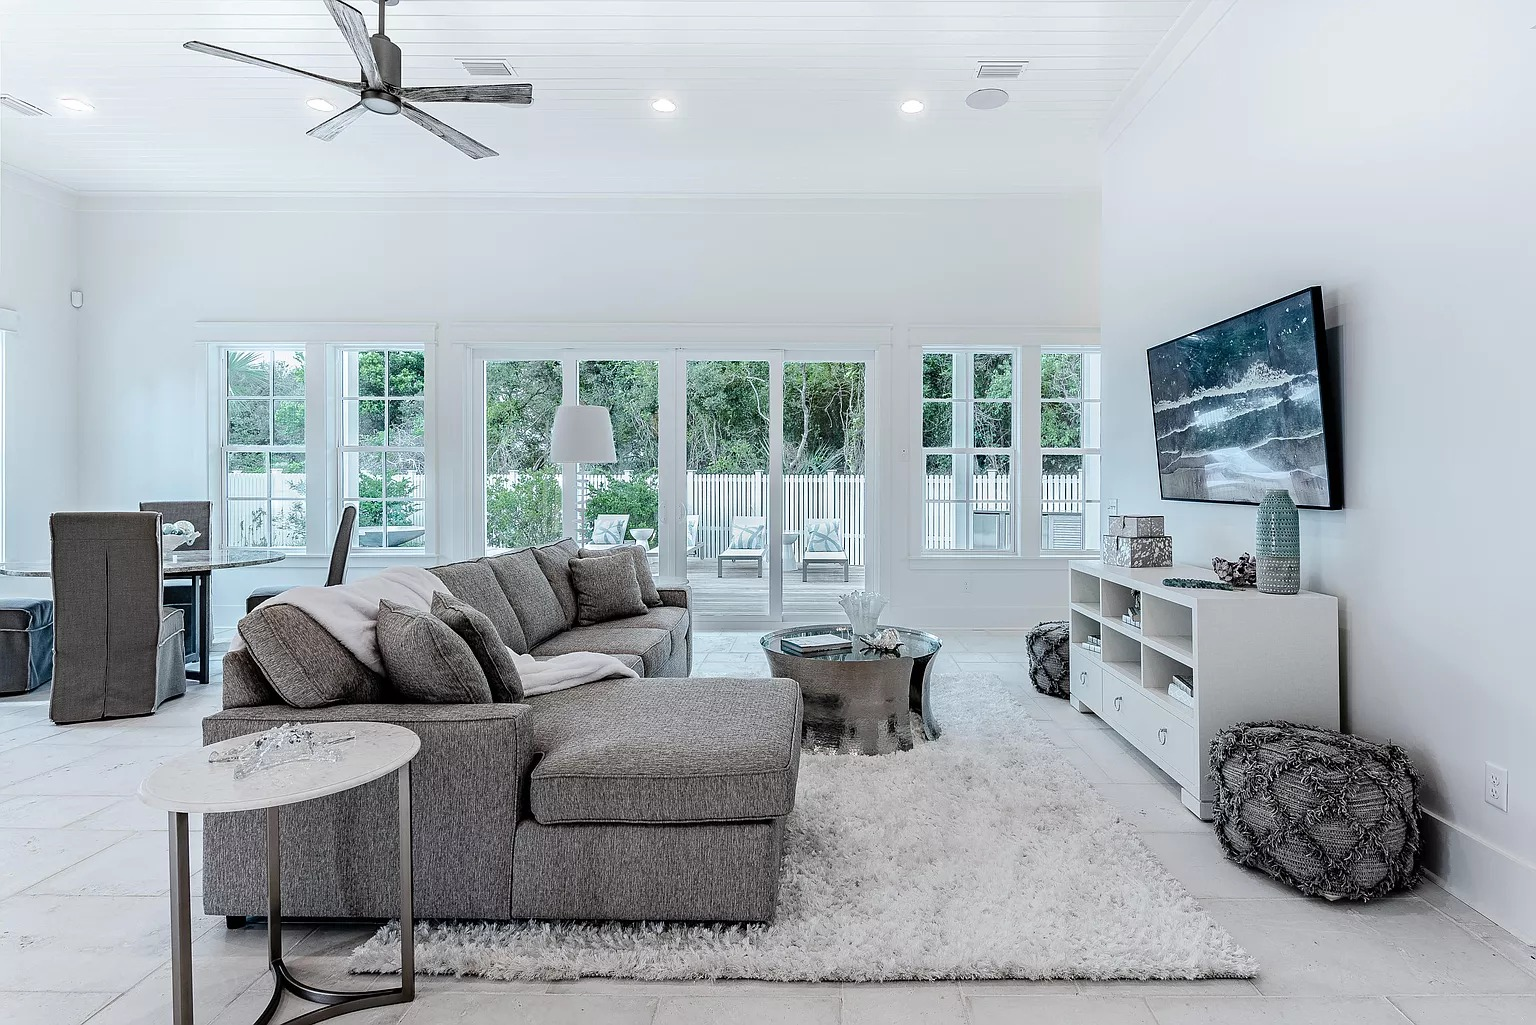 41 Green St, Seacrest, FL 32461 - $3,995,000 home for sale, house images, photos and pics gallery